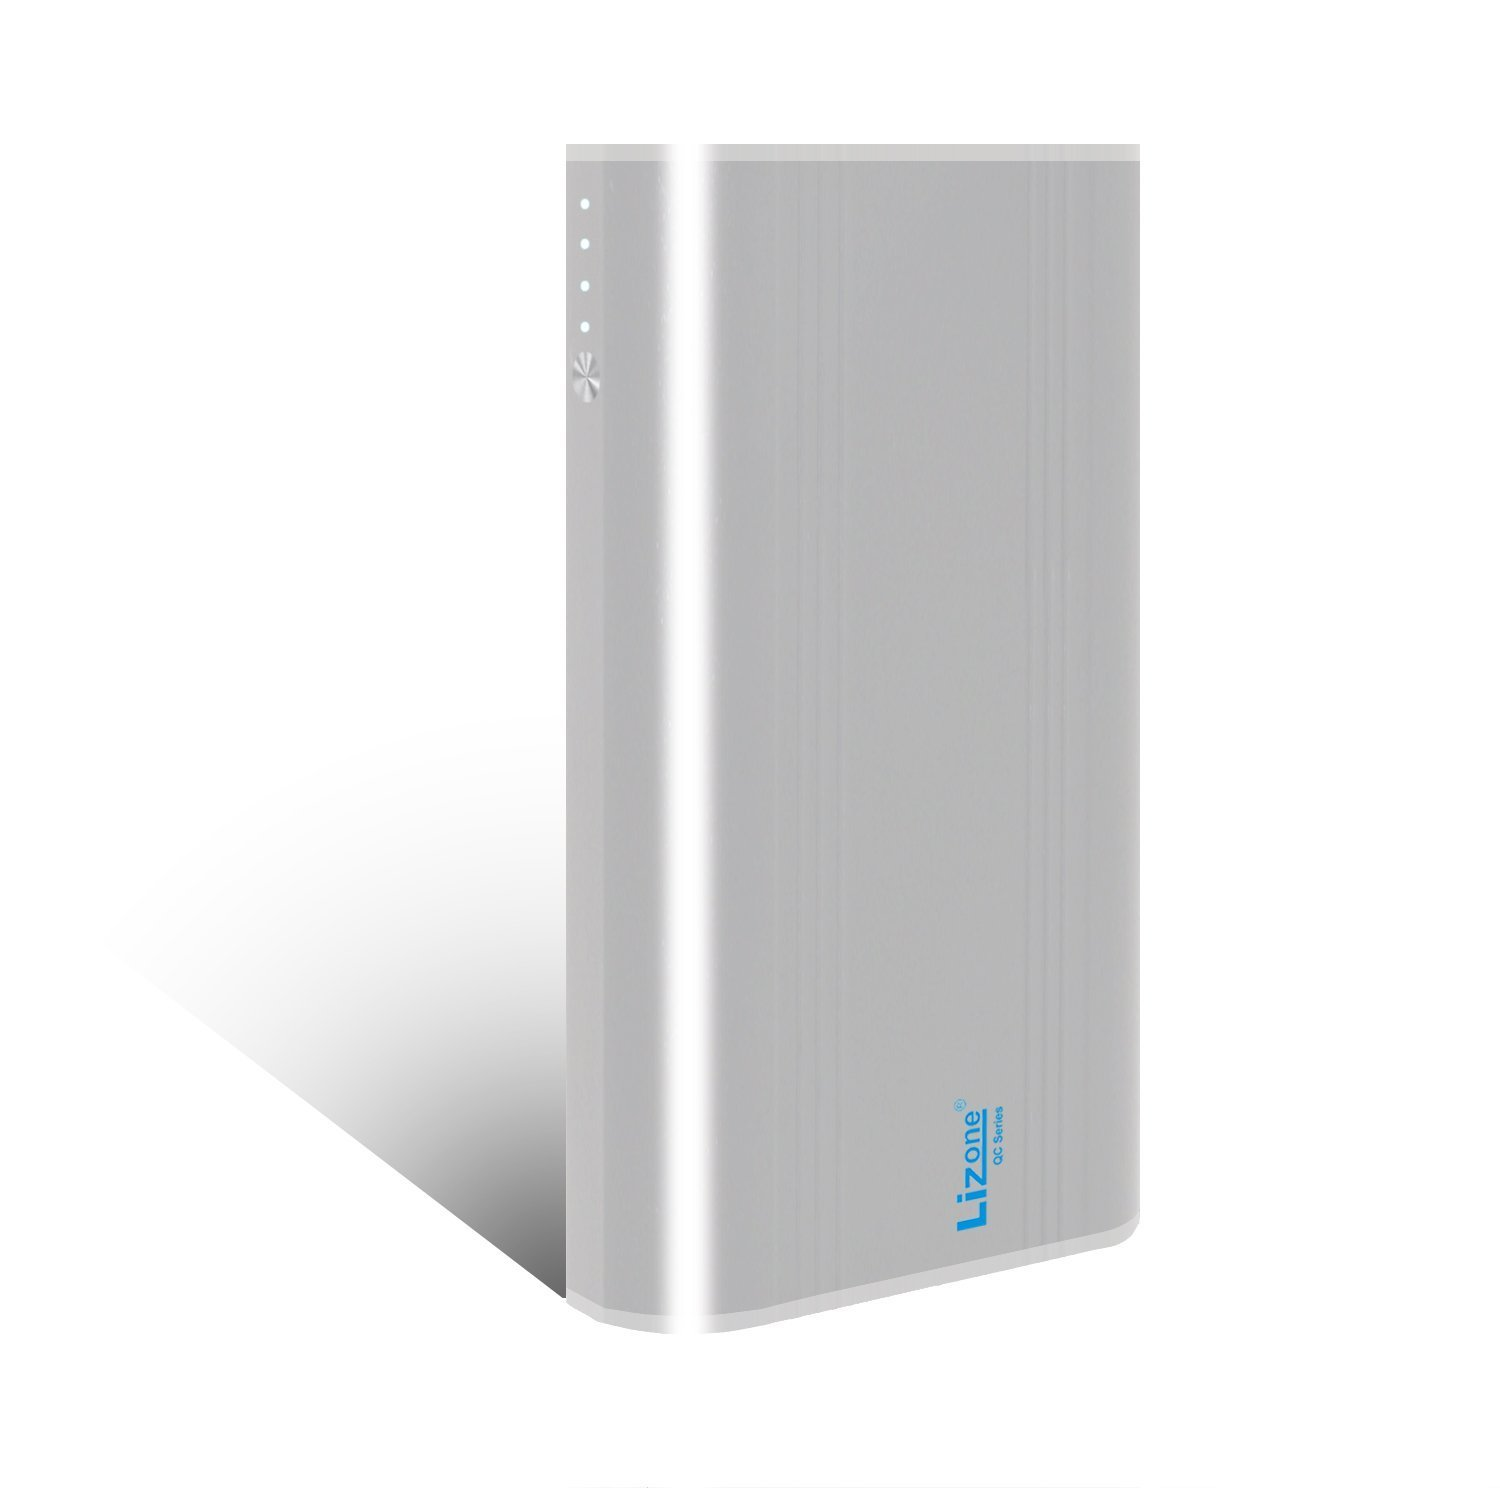 Lizone 35KmAh QC Portable Charger External Battery Power Bank for Apple Macbook Pro 15 13 Macbook Air 13 11, USB Ports Quick Charge for iPad iPhone 8 7 6 6S Plus and more Tablets or Smartphones. by Lizone